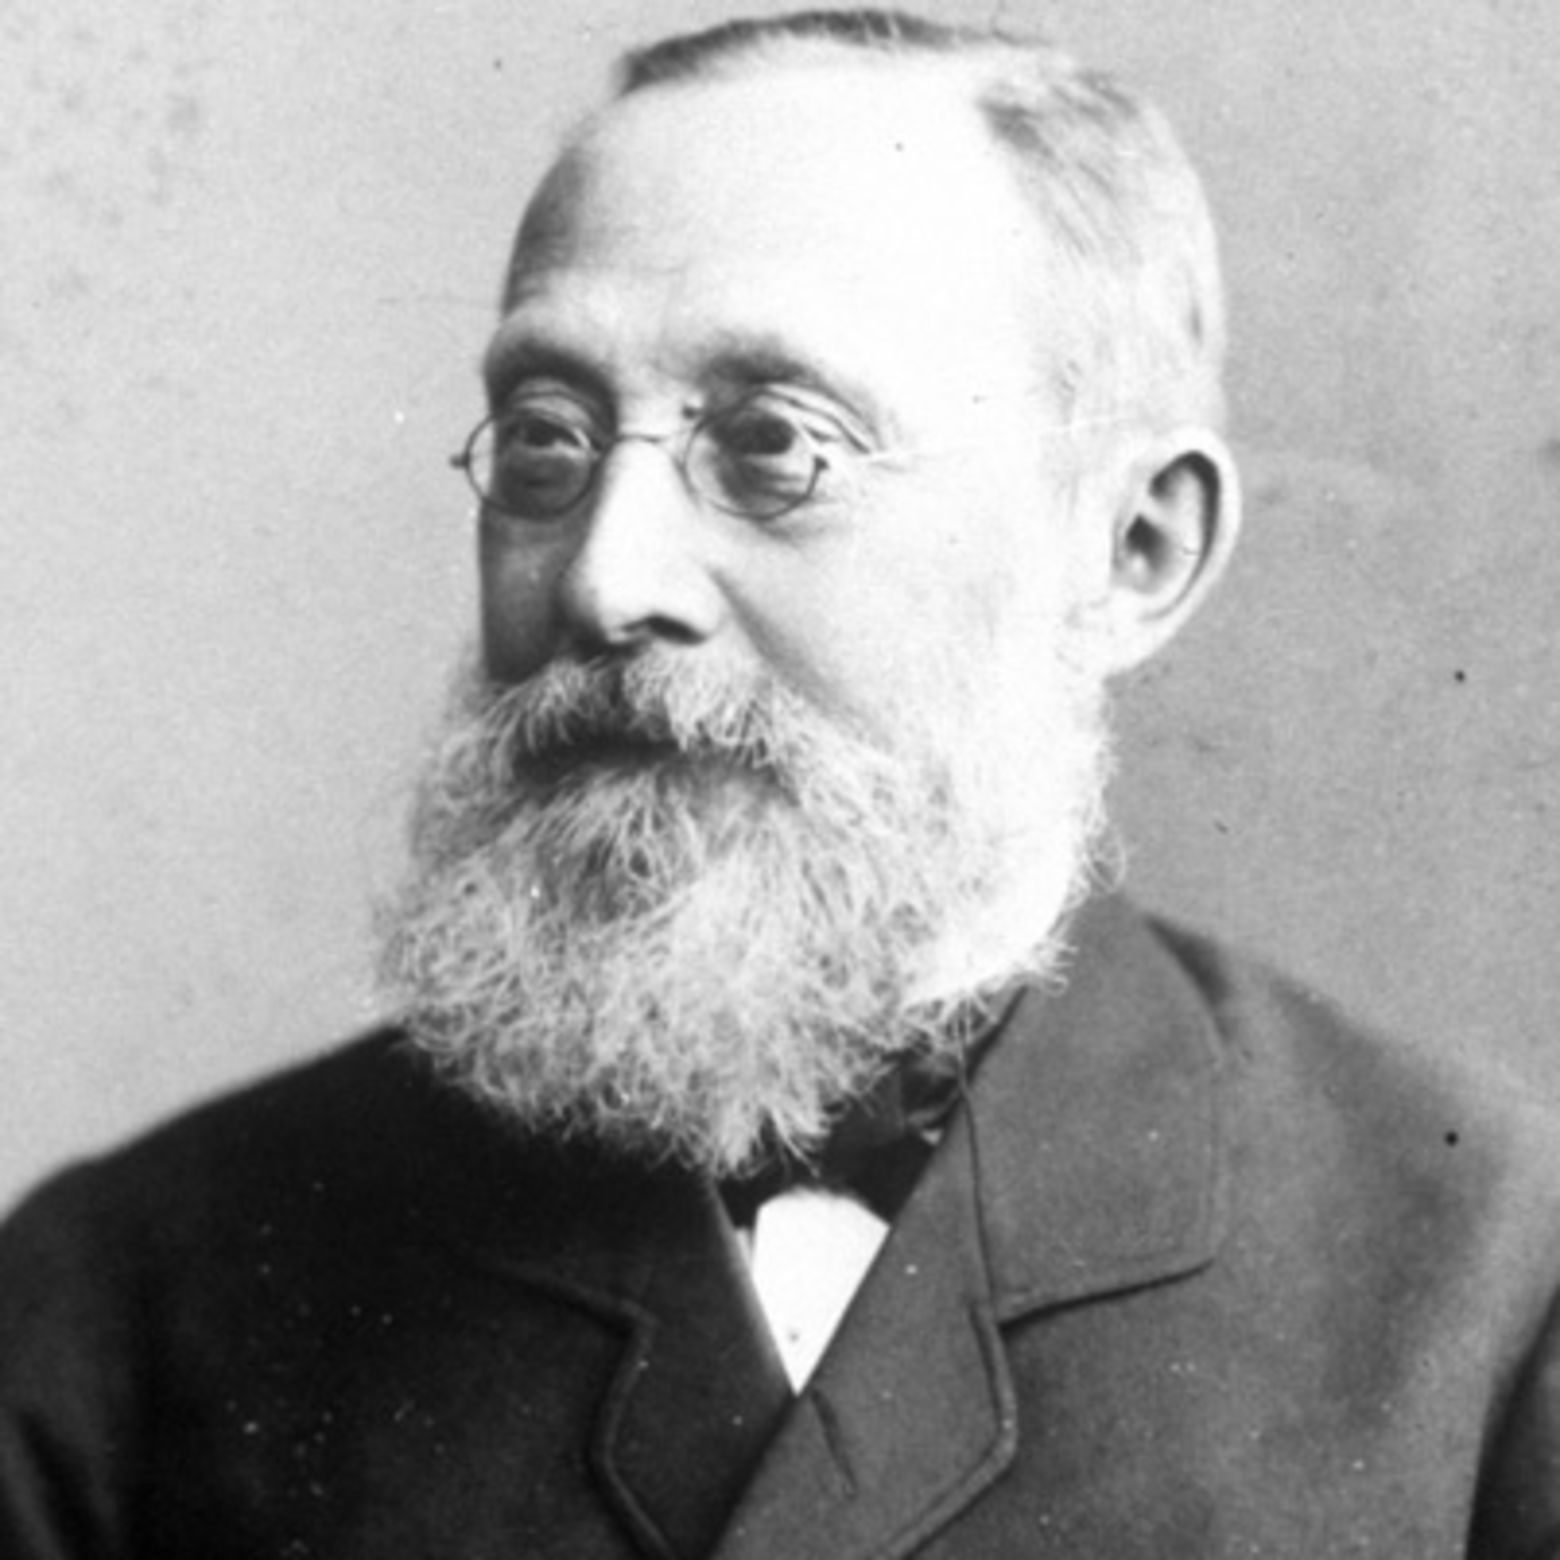 Rudolf virchow was a 19th century german pathologist and rudolf virchow cell theory timeline rudolph virchow cell theory rudolf virchow known for